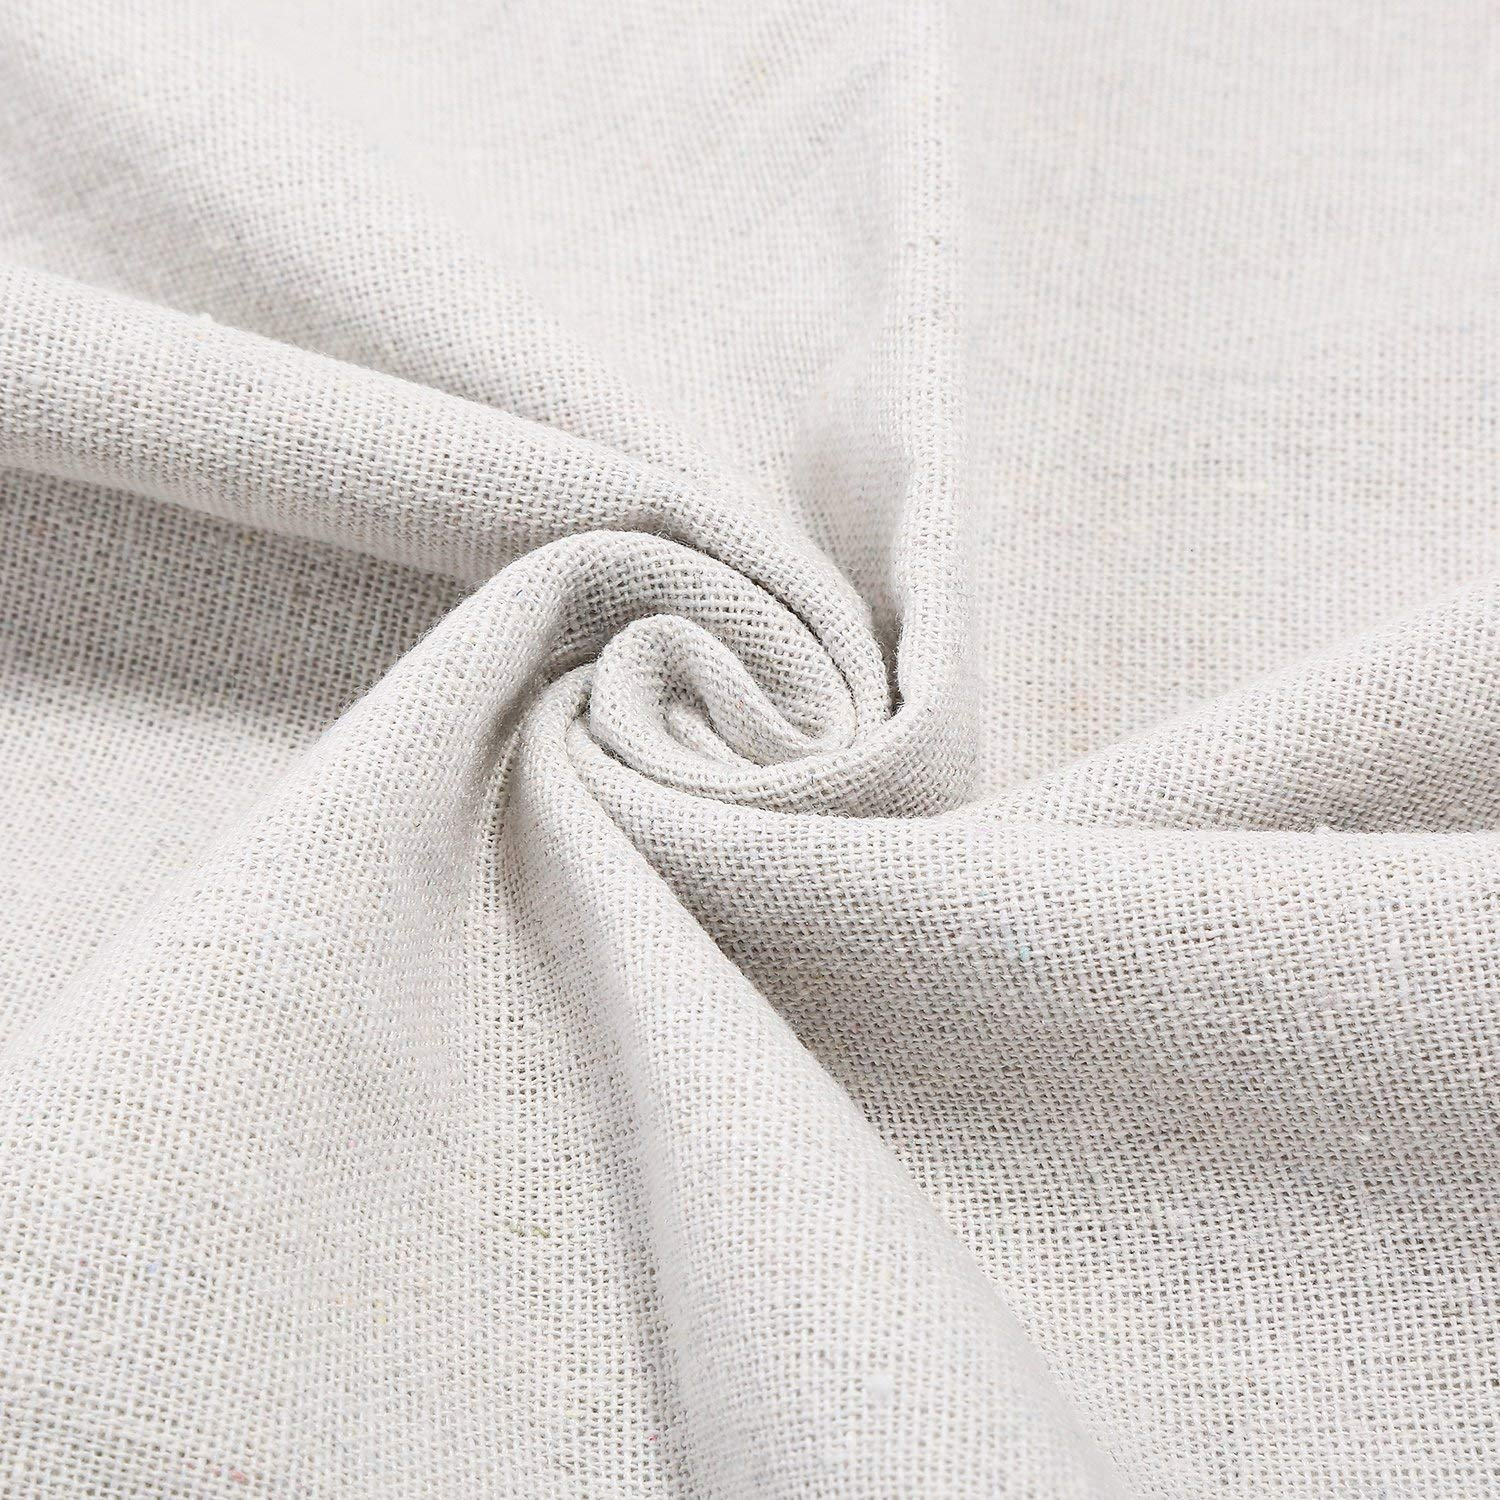 Jetec Natural Linen Fabric Solid Colored Needlework Cross Stitch Cloth for Needle Embroidery, 62 by 20 inches, Pure White